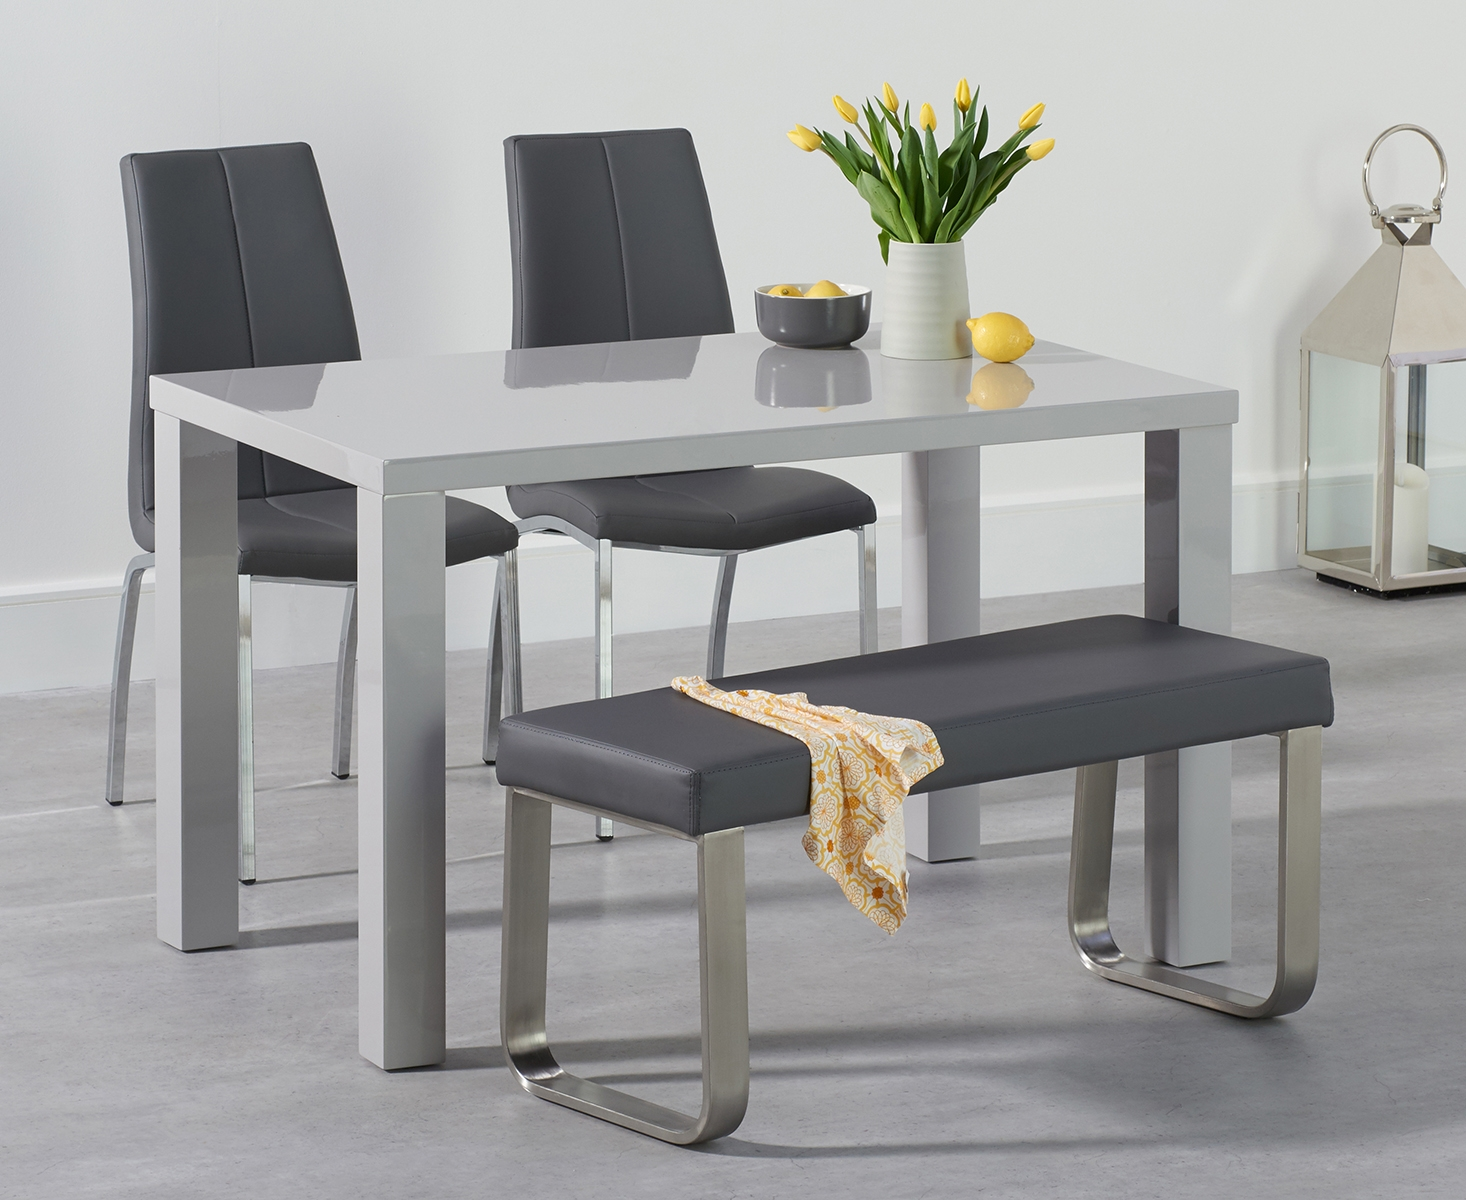 An image of Atlanta 120cm Light Grey High Gloss Dining Table with Cavello Chairs and Atlanta...